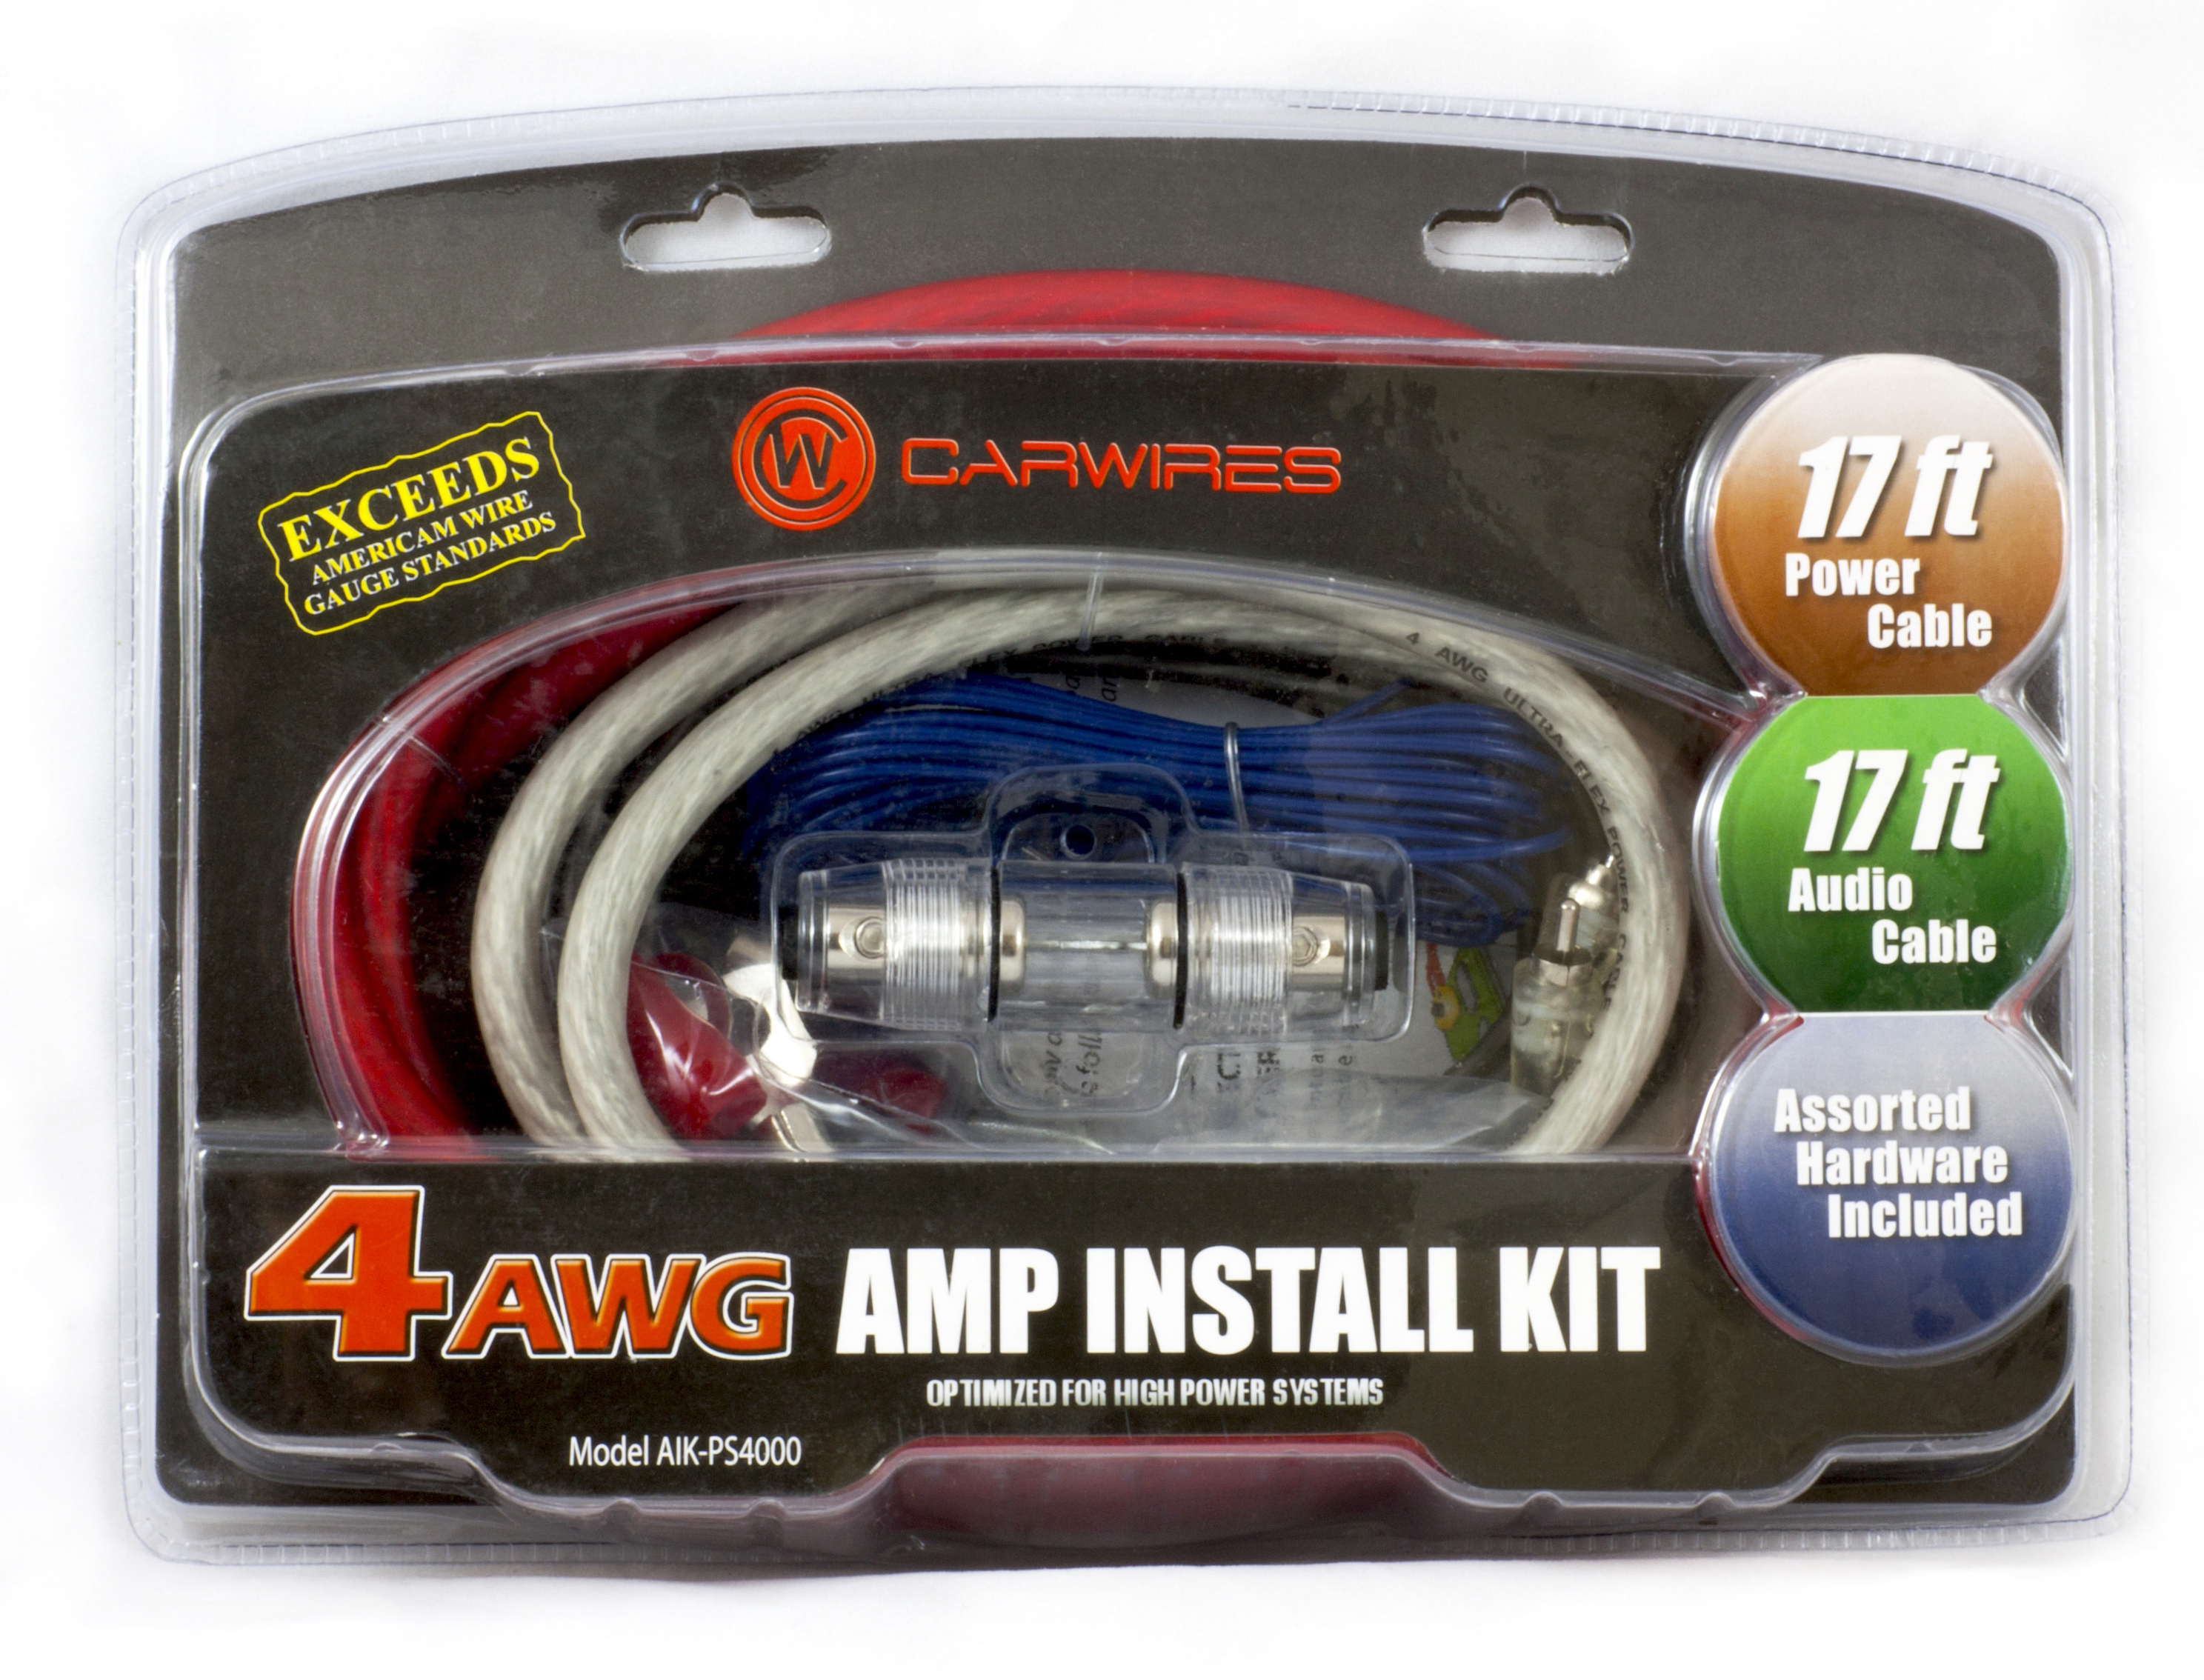 carwires aik ps4000 1000 watt 4 awg car amplifier install kit rh walmart com Amp Wiring Kit Best Amp Wiring Kit